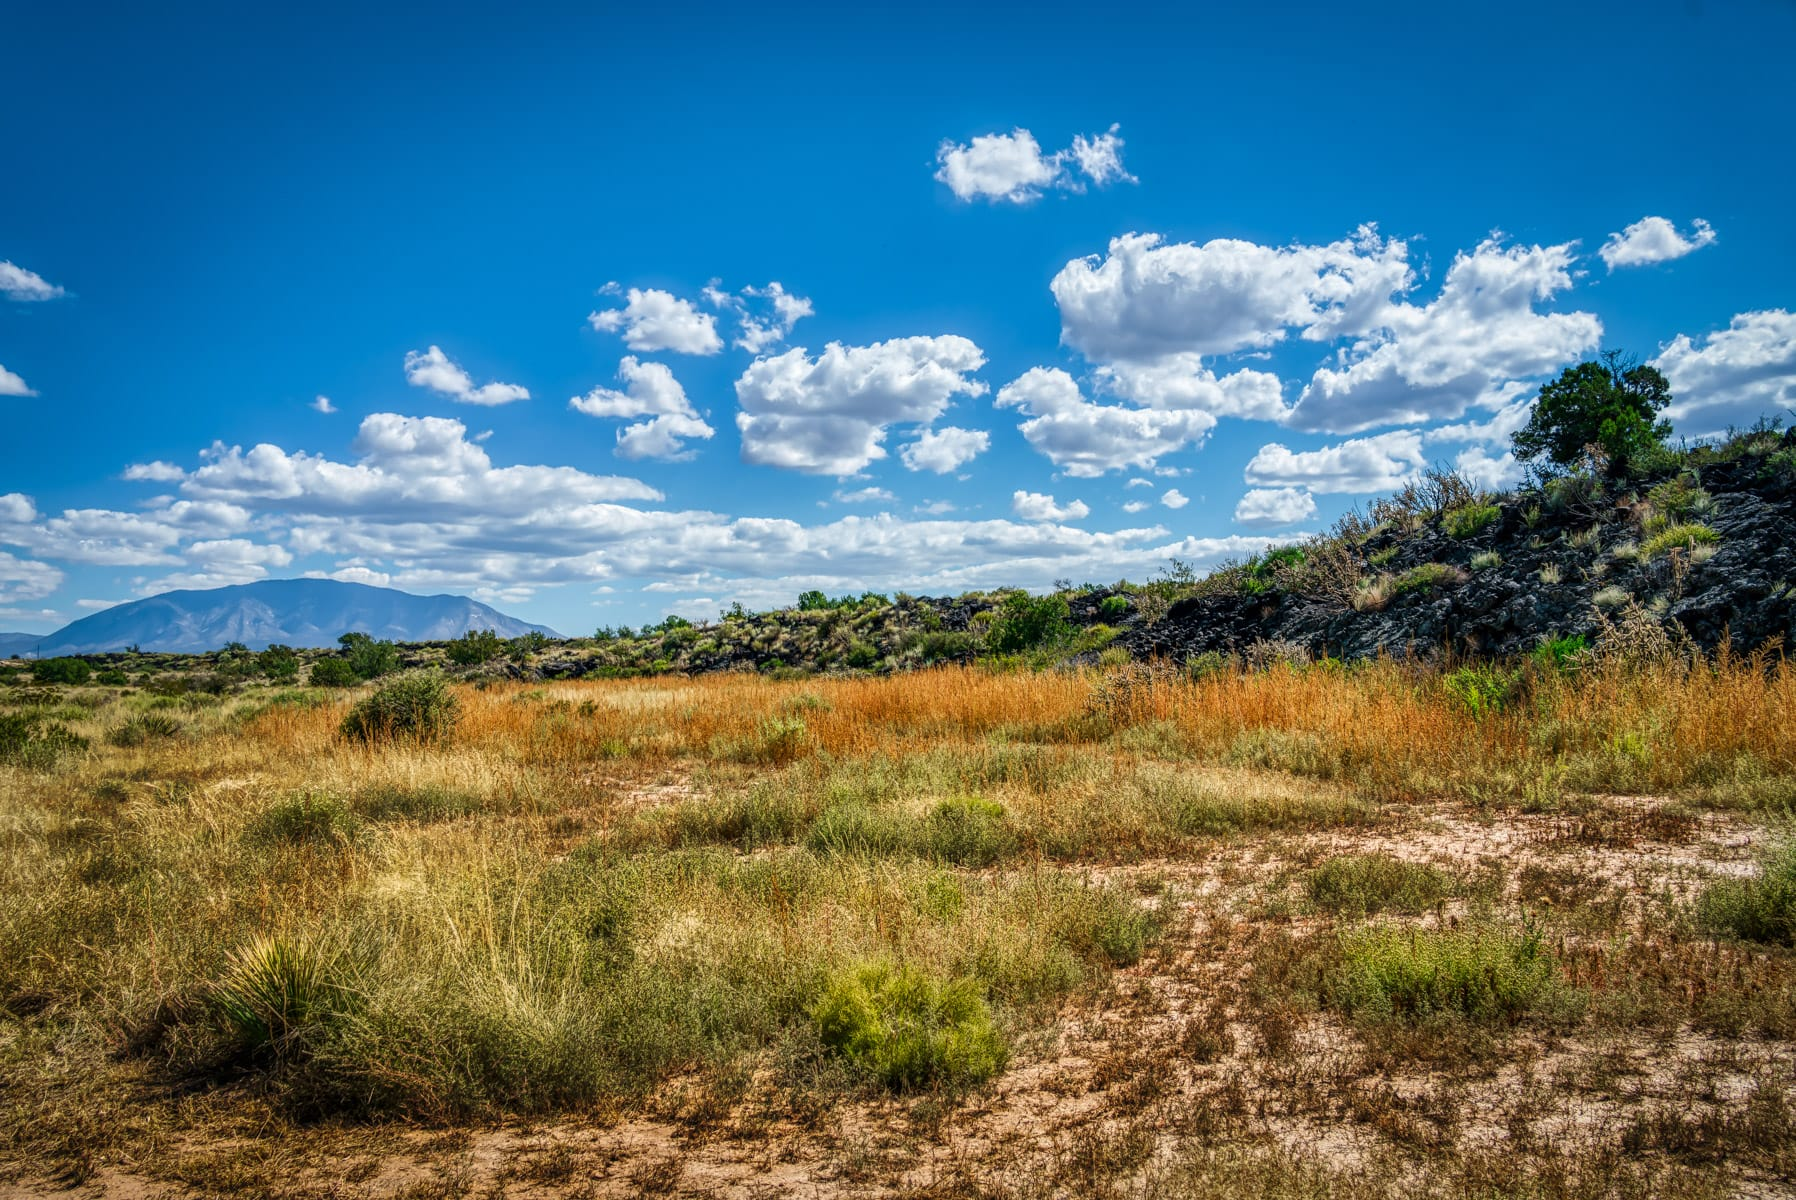 An ancient lava flow reaches towards distant mountains at the Valley of Fires in the Carrizozo Malpais, New Mexico.